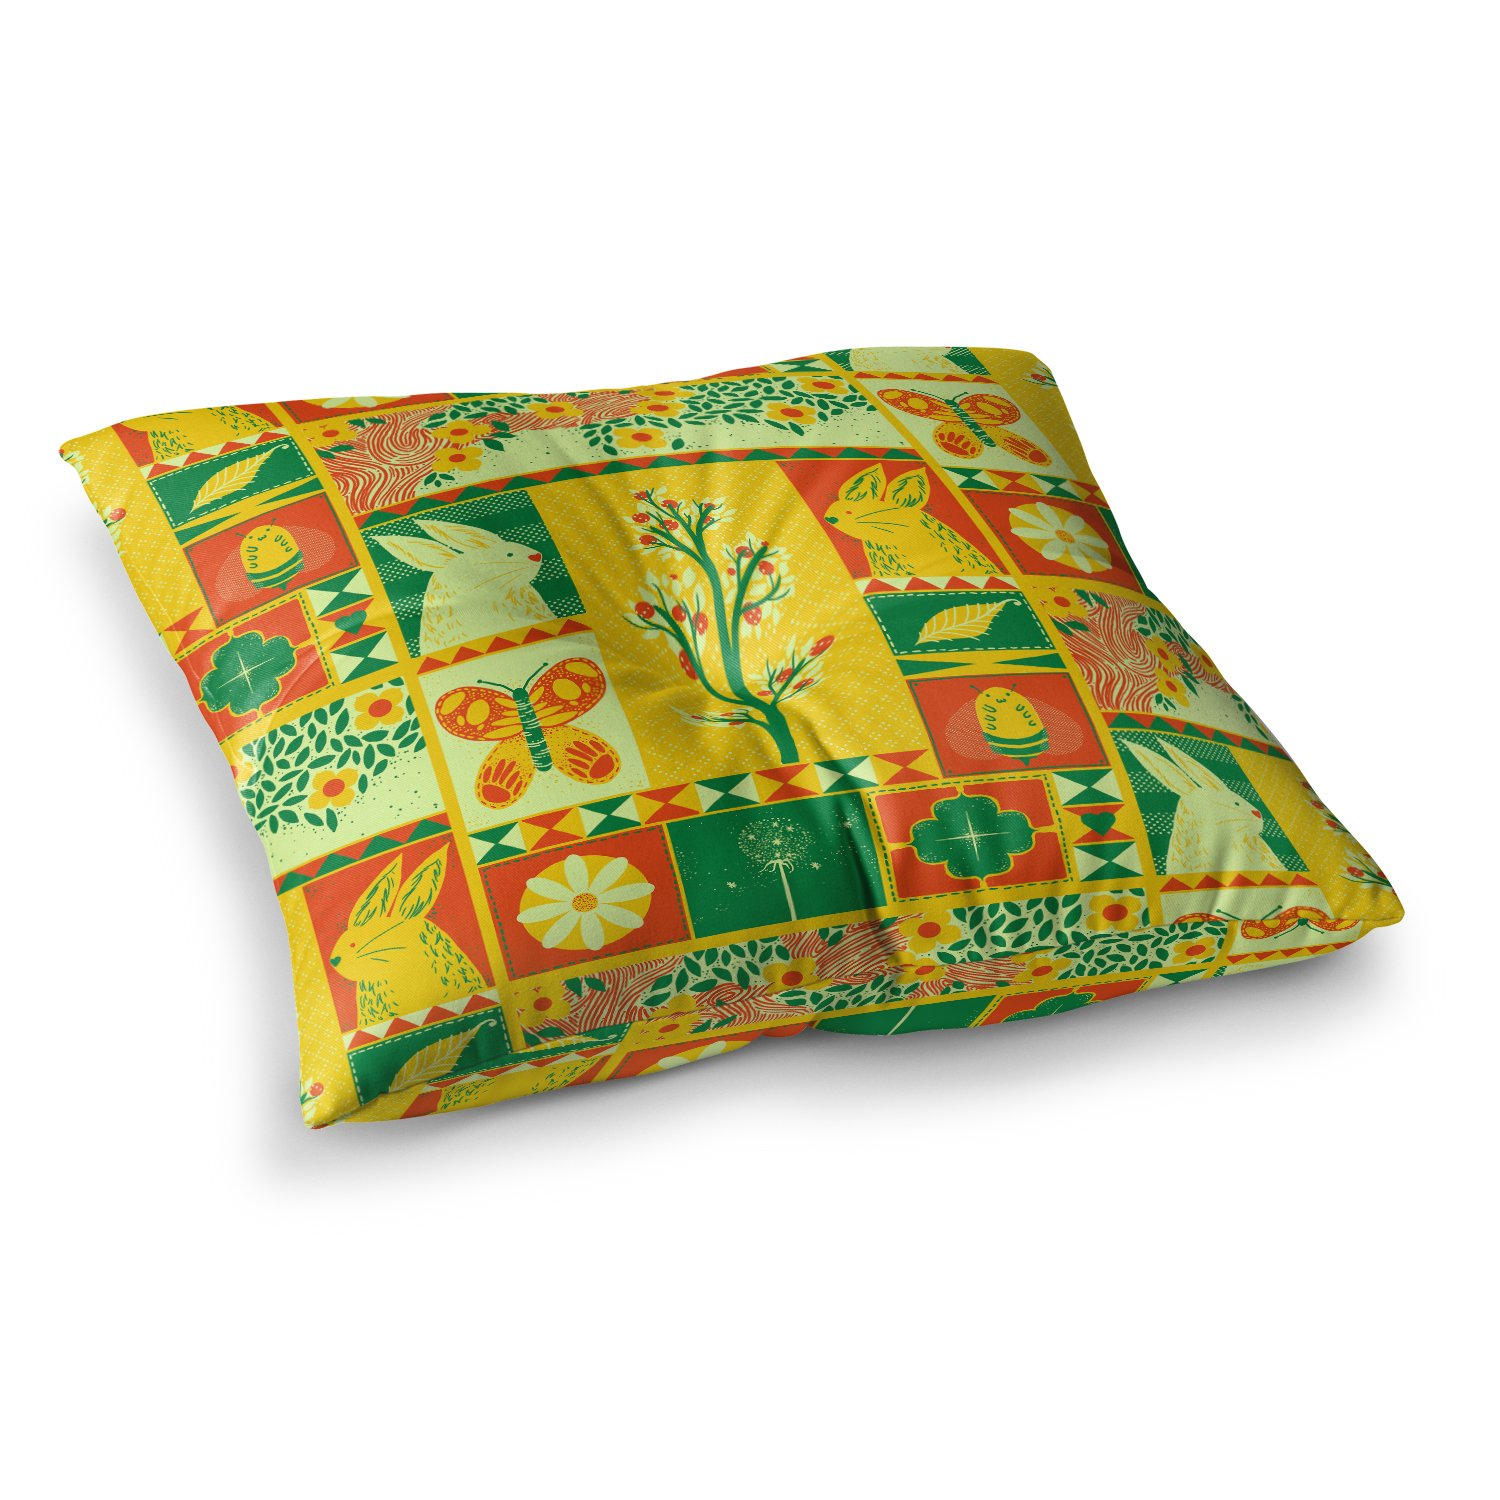 23 x 23 Square Floor Pillow Kess InHouse Tobe Fonseca Spring Yellow Seasonal